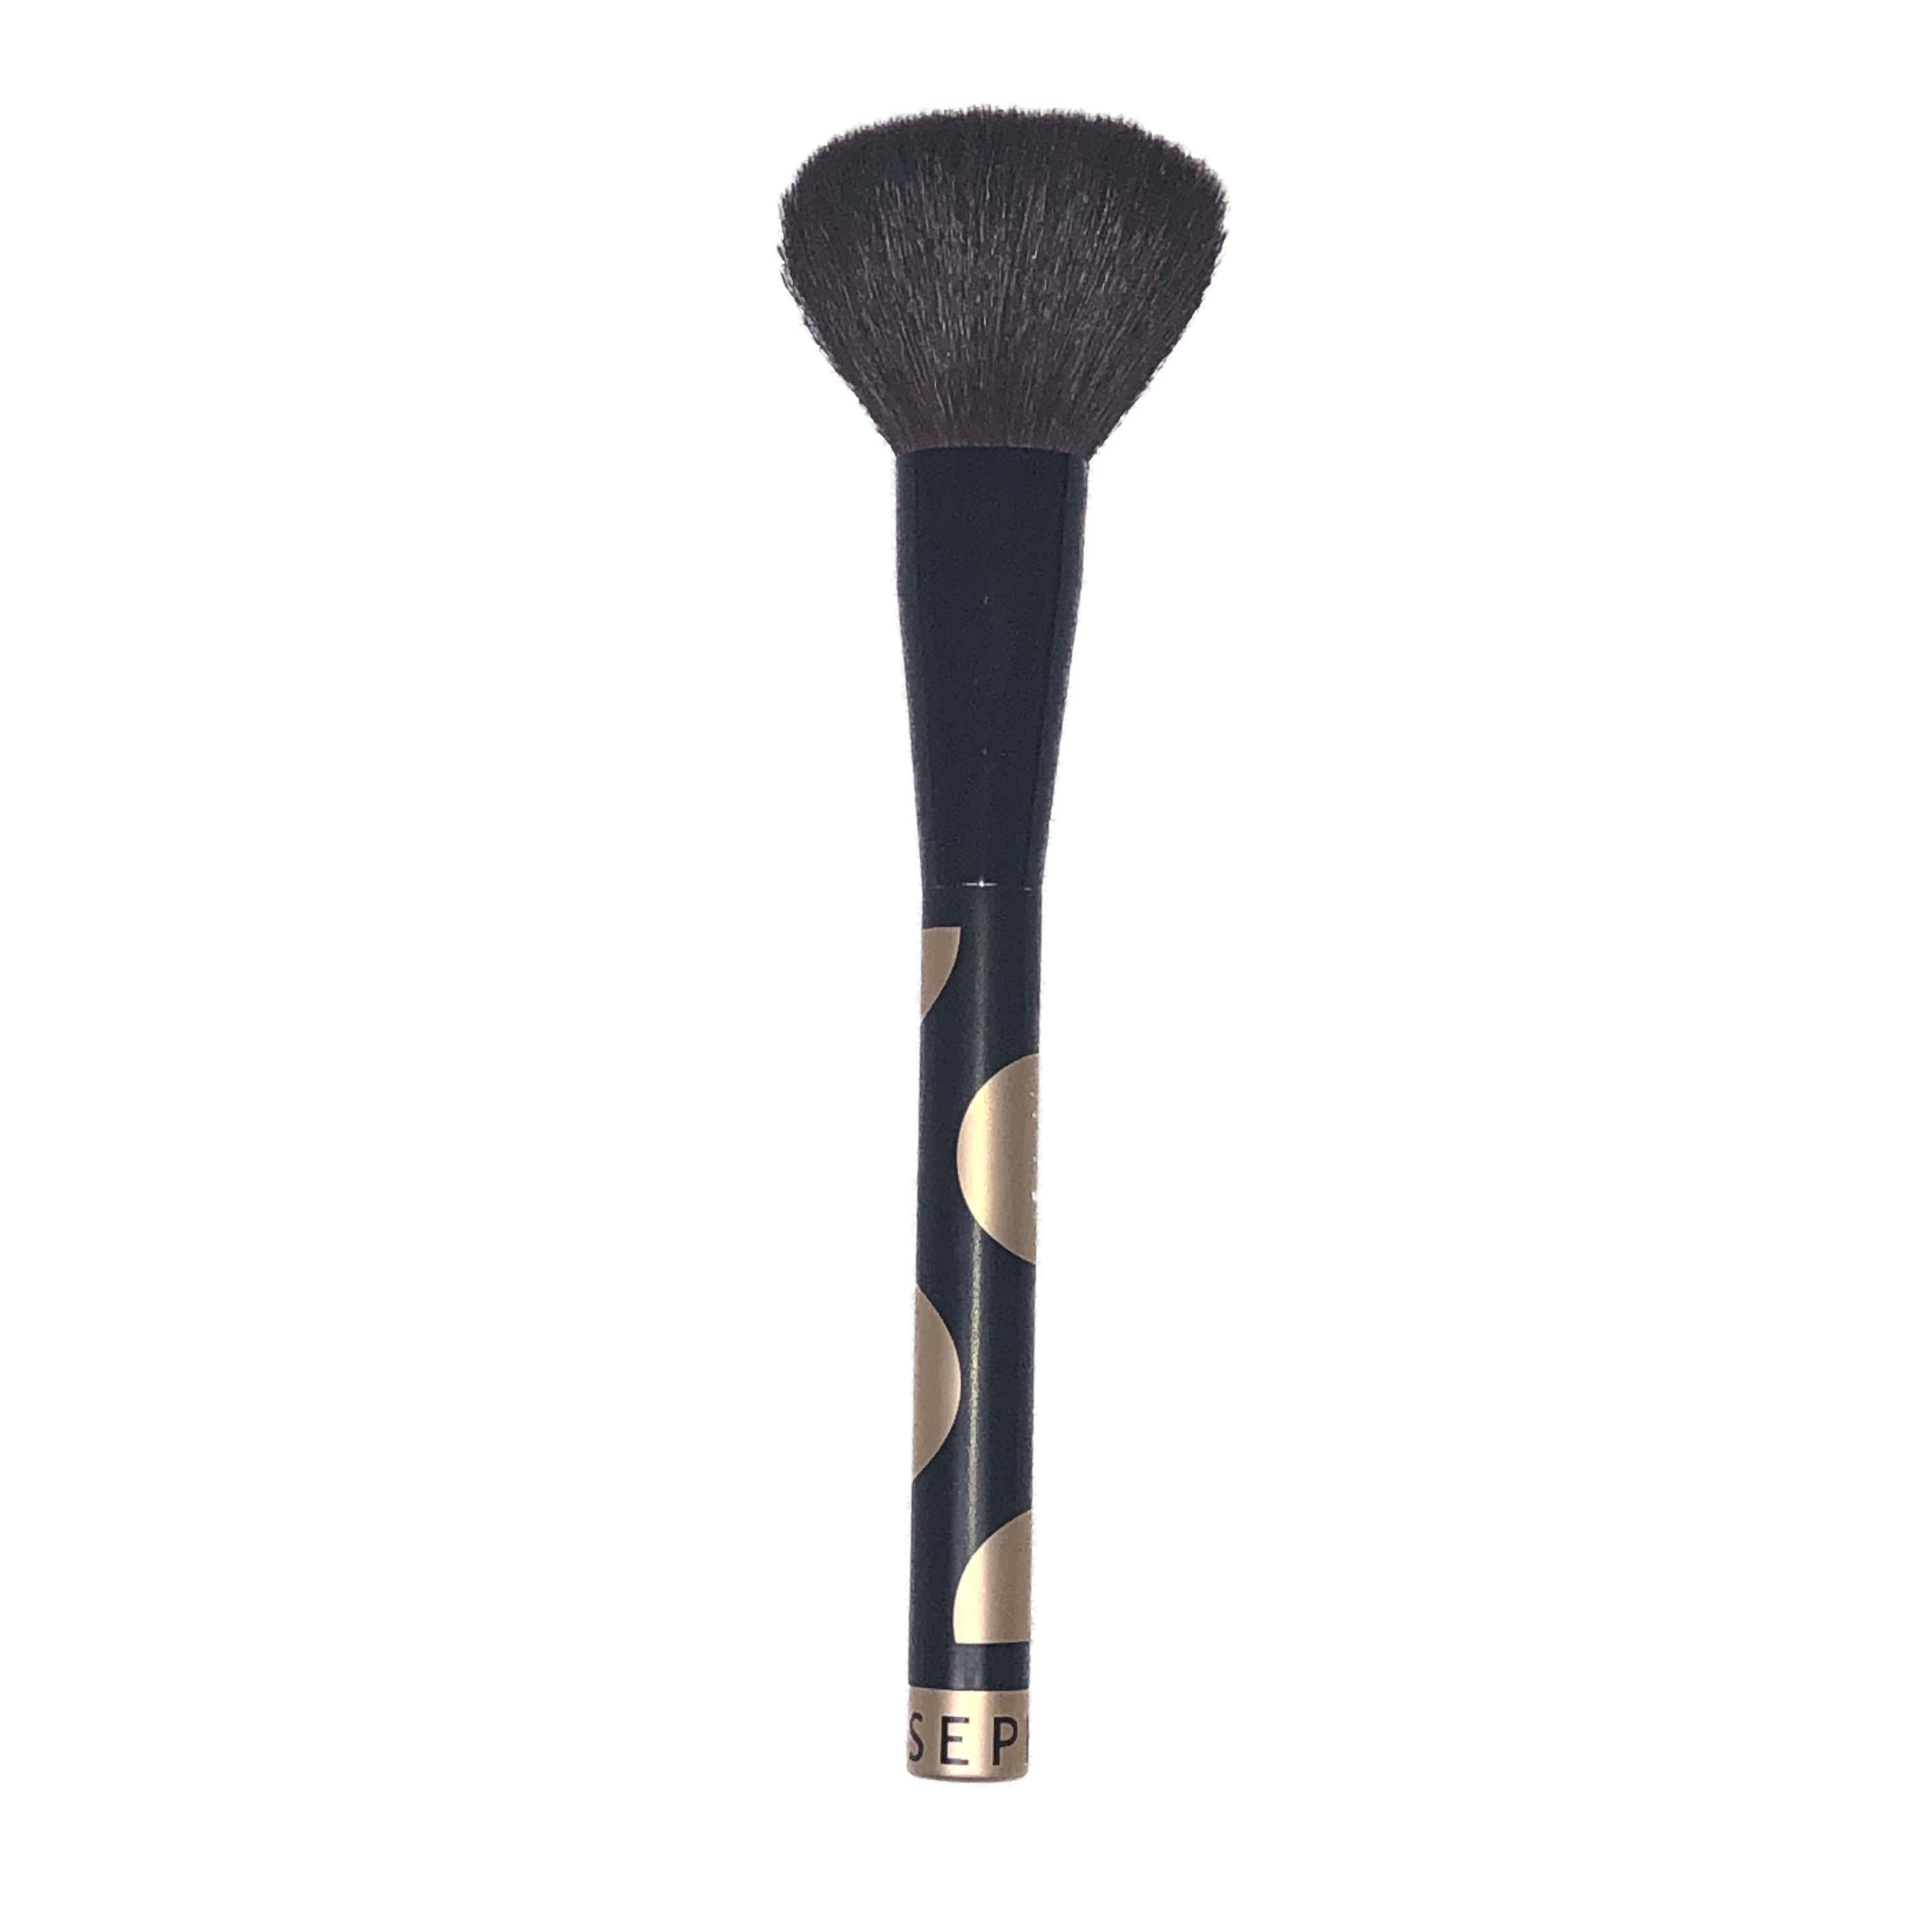 Sephora Large Powder Face Brush Minnie Mouse Collection